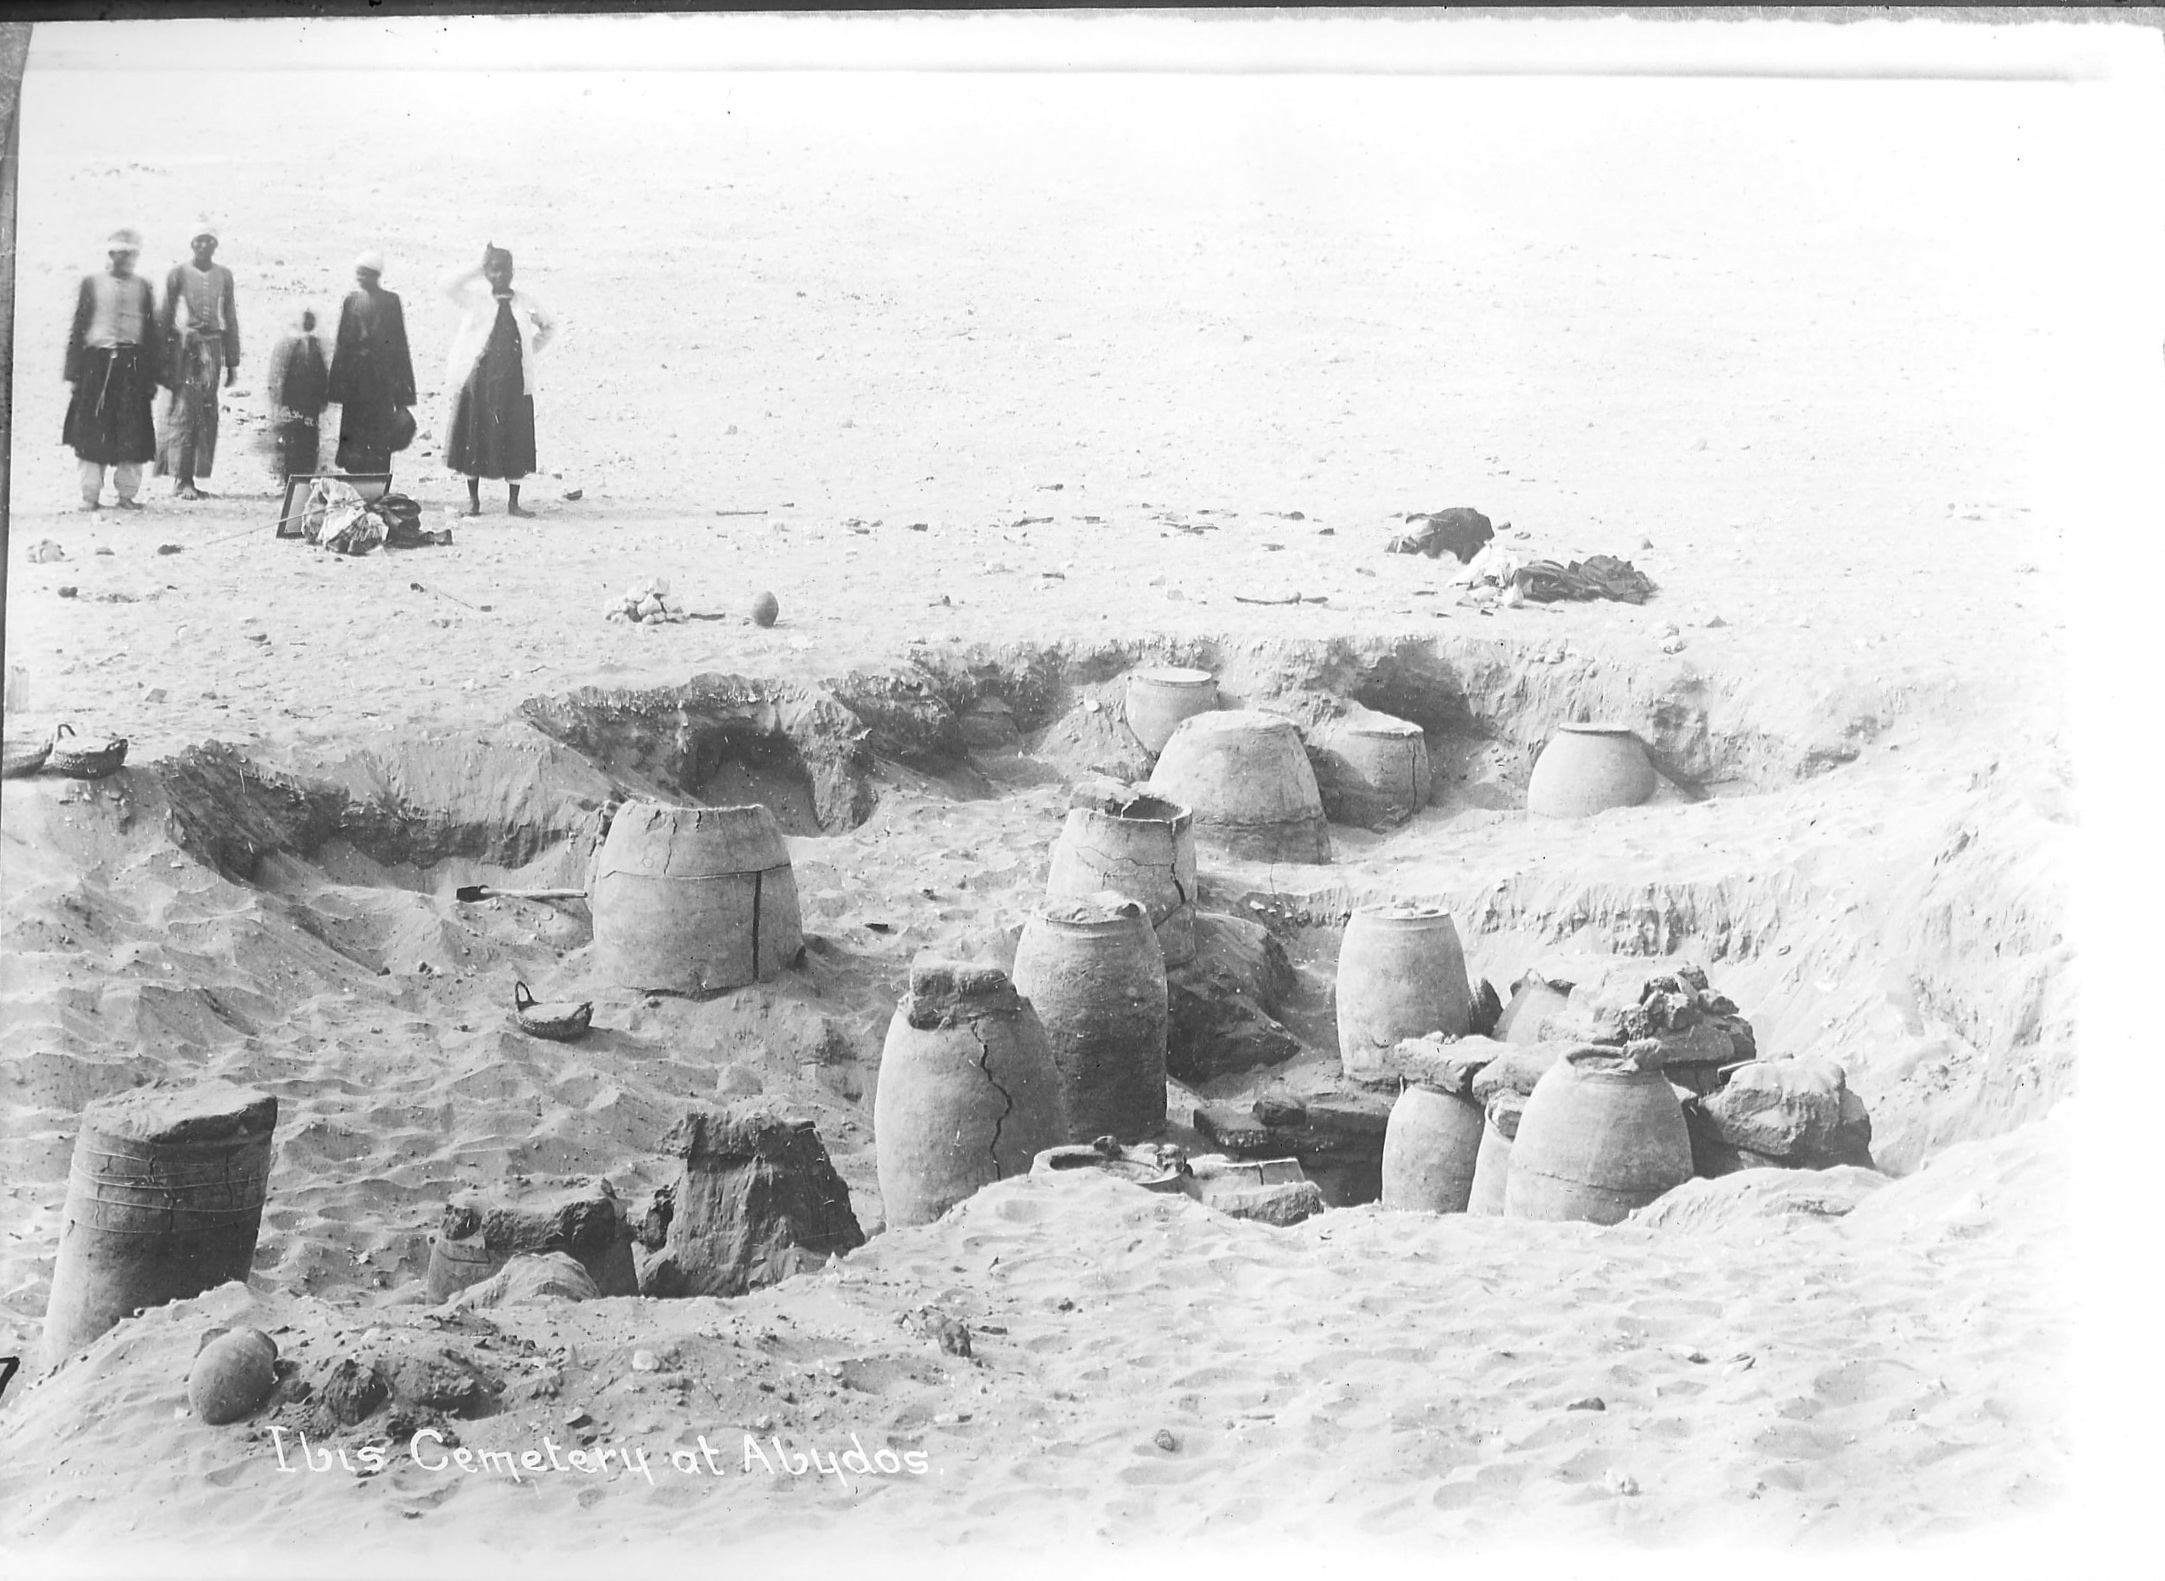 Fig. 4. Excavation of ibis burials in the Middle Cemetery at Abydos during W.L.S. Loat's excavations with T.E. Peet in 1912-13. Photo courtesy of the  Egypt Exploration Society